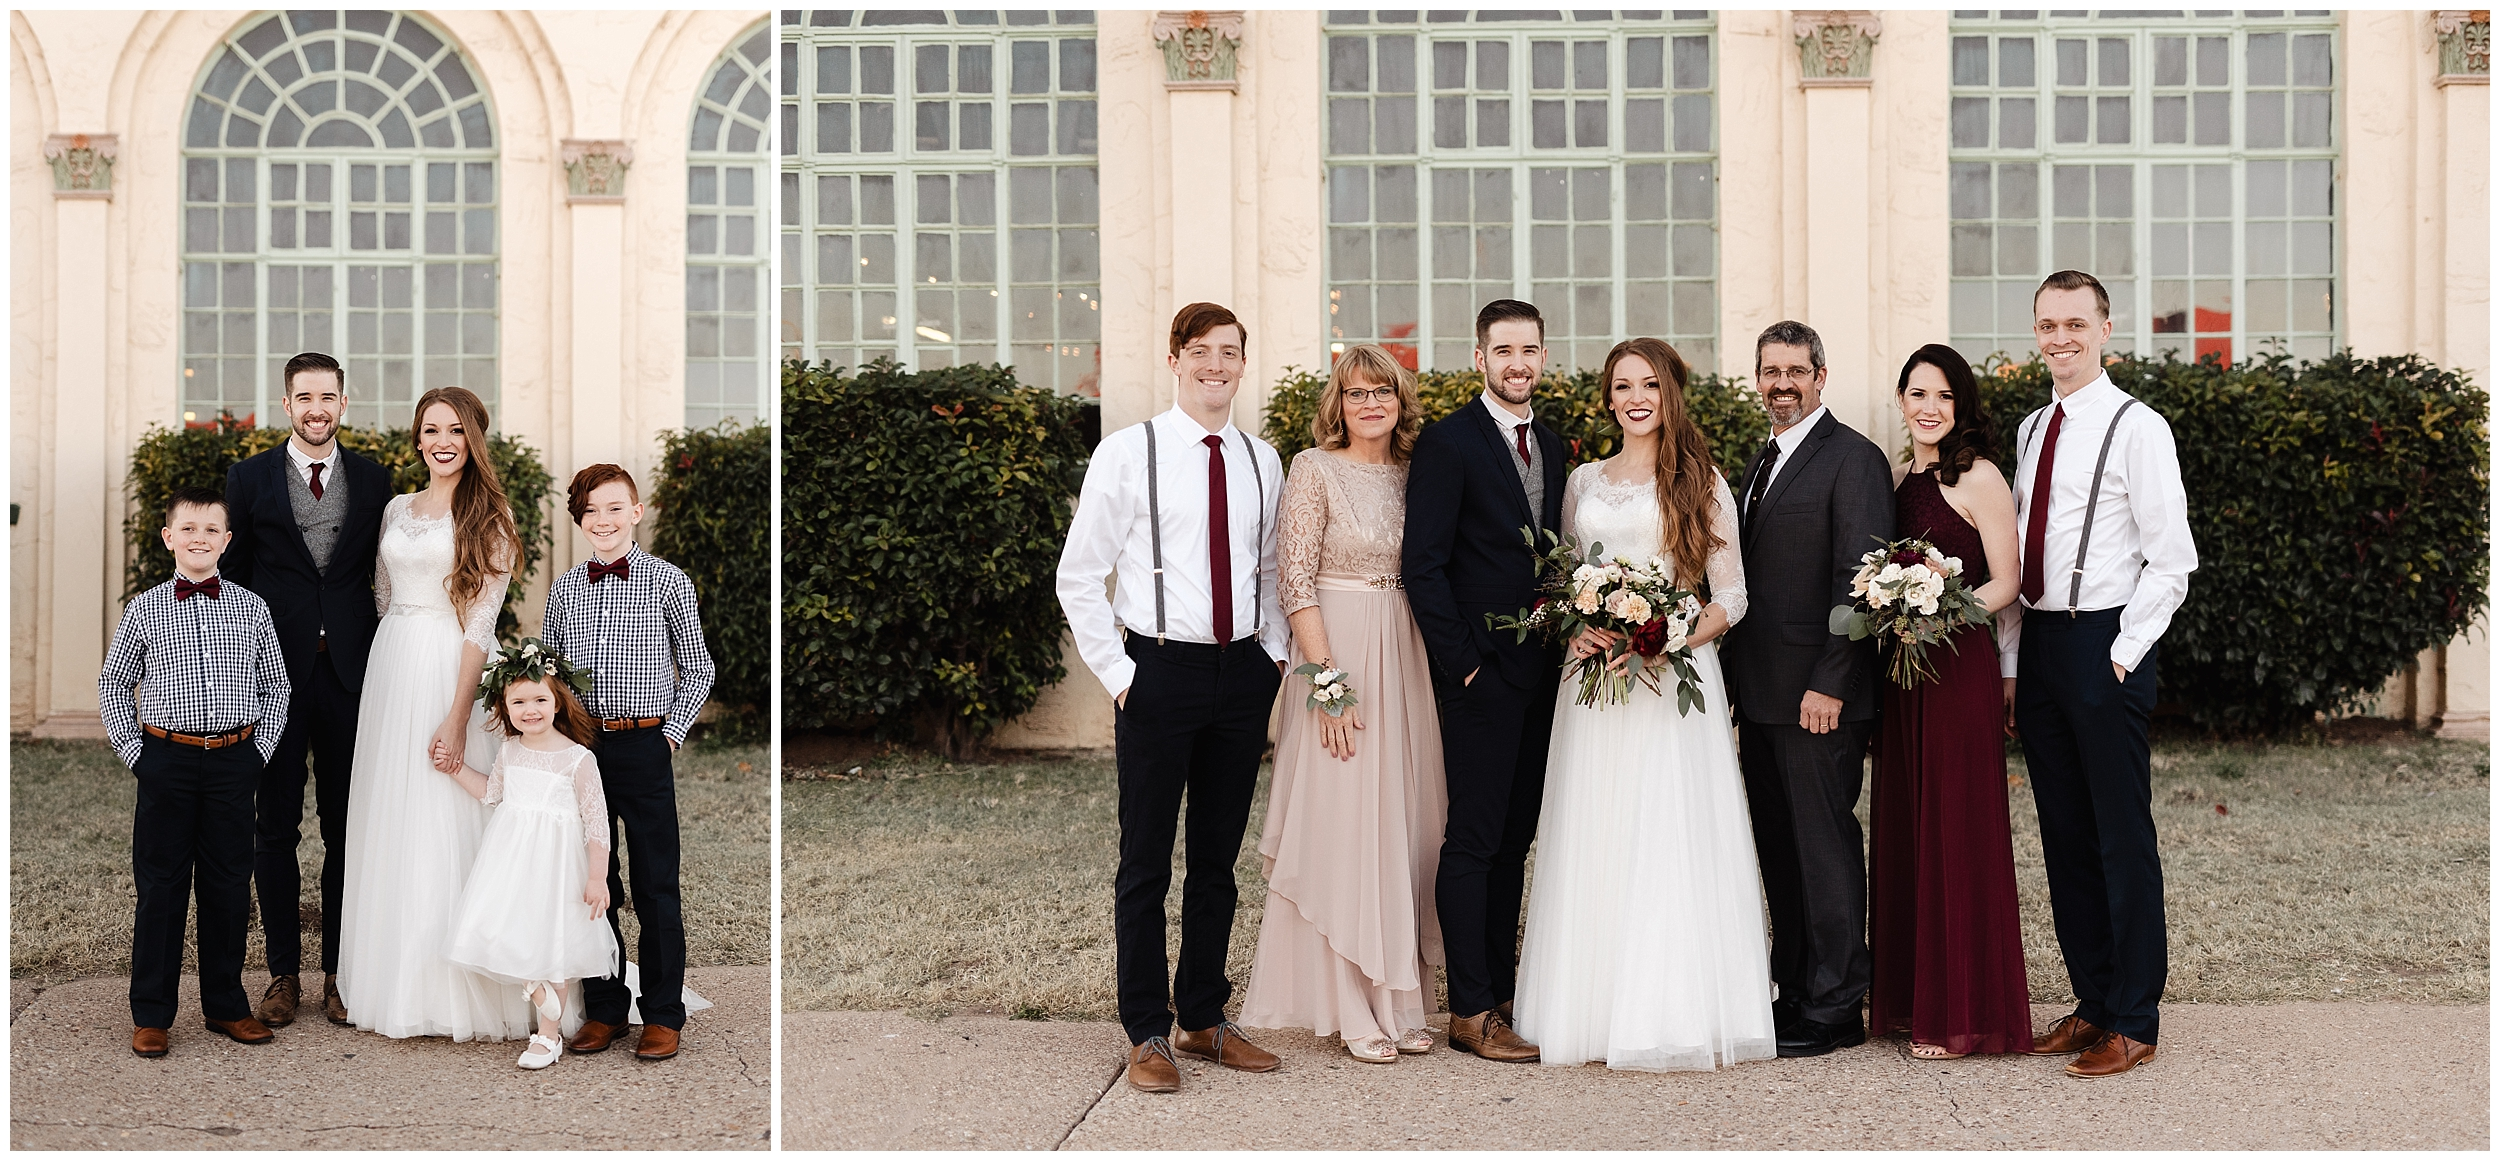 oklahoma wedding photographer family bride father brother bridal gown wedding day